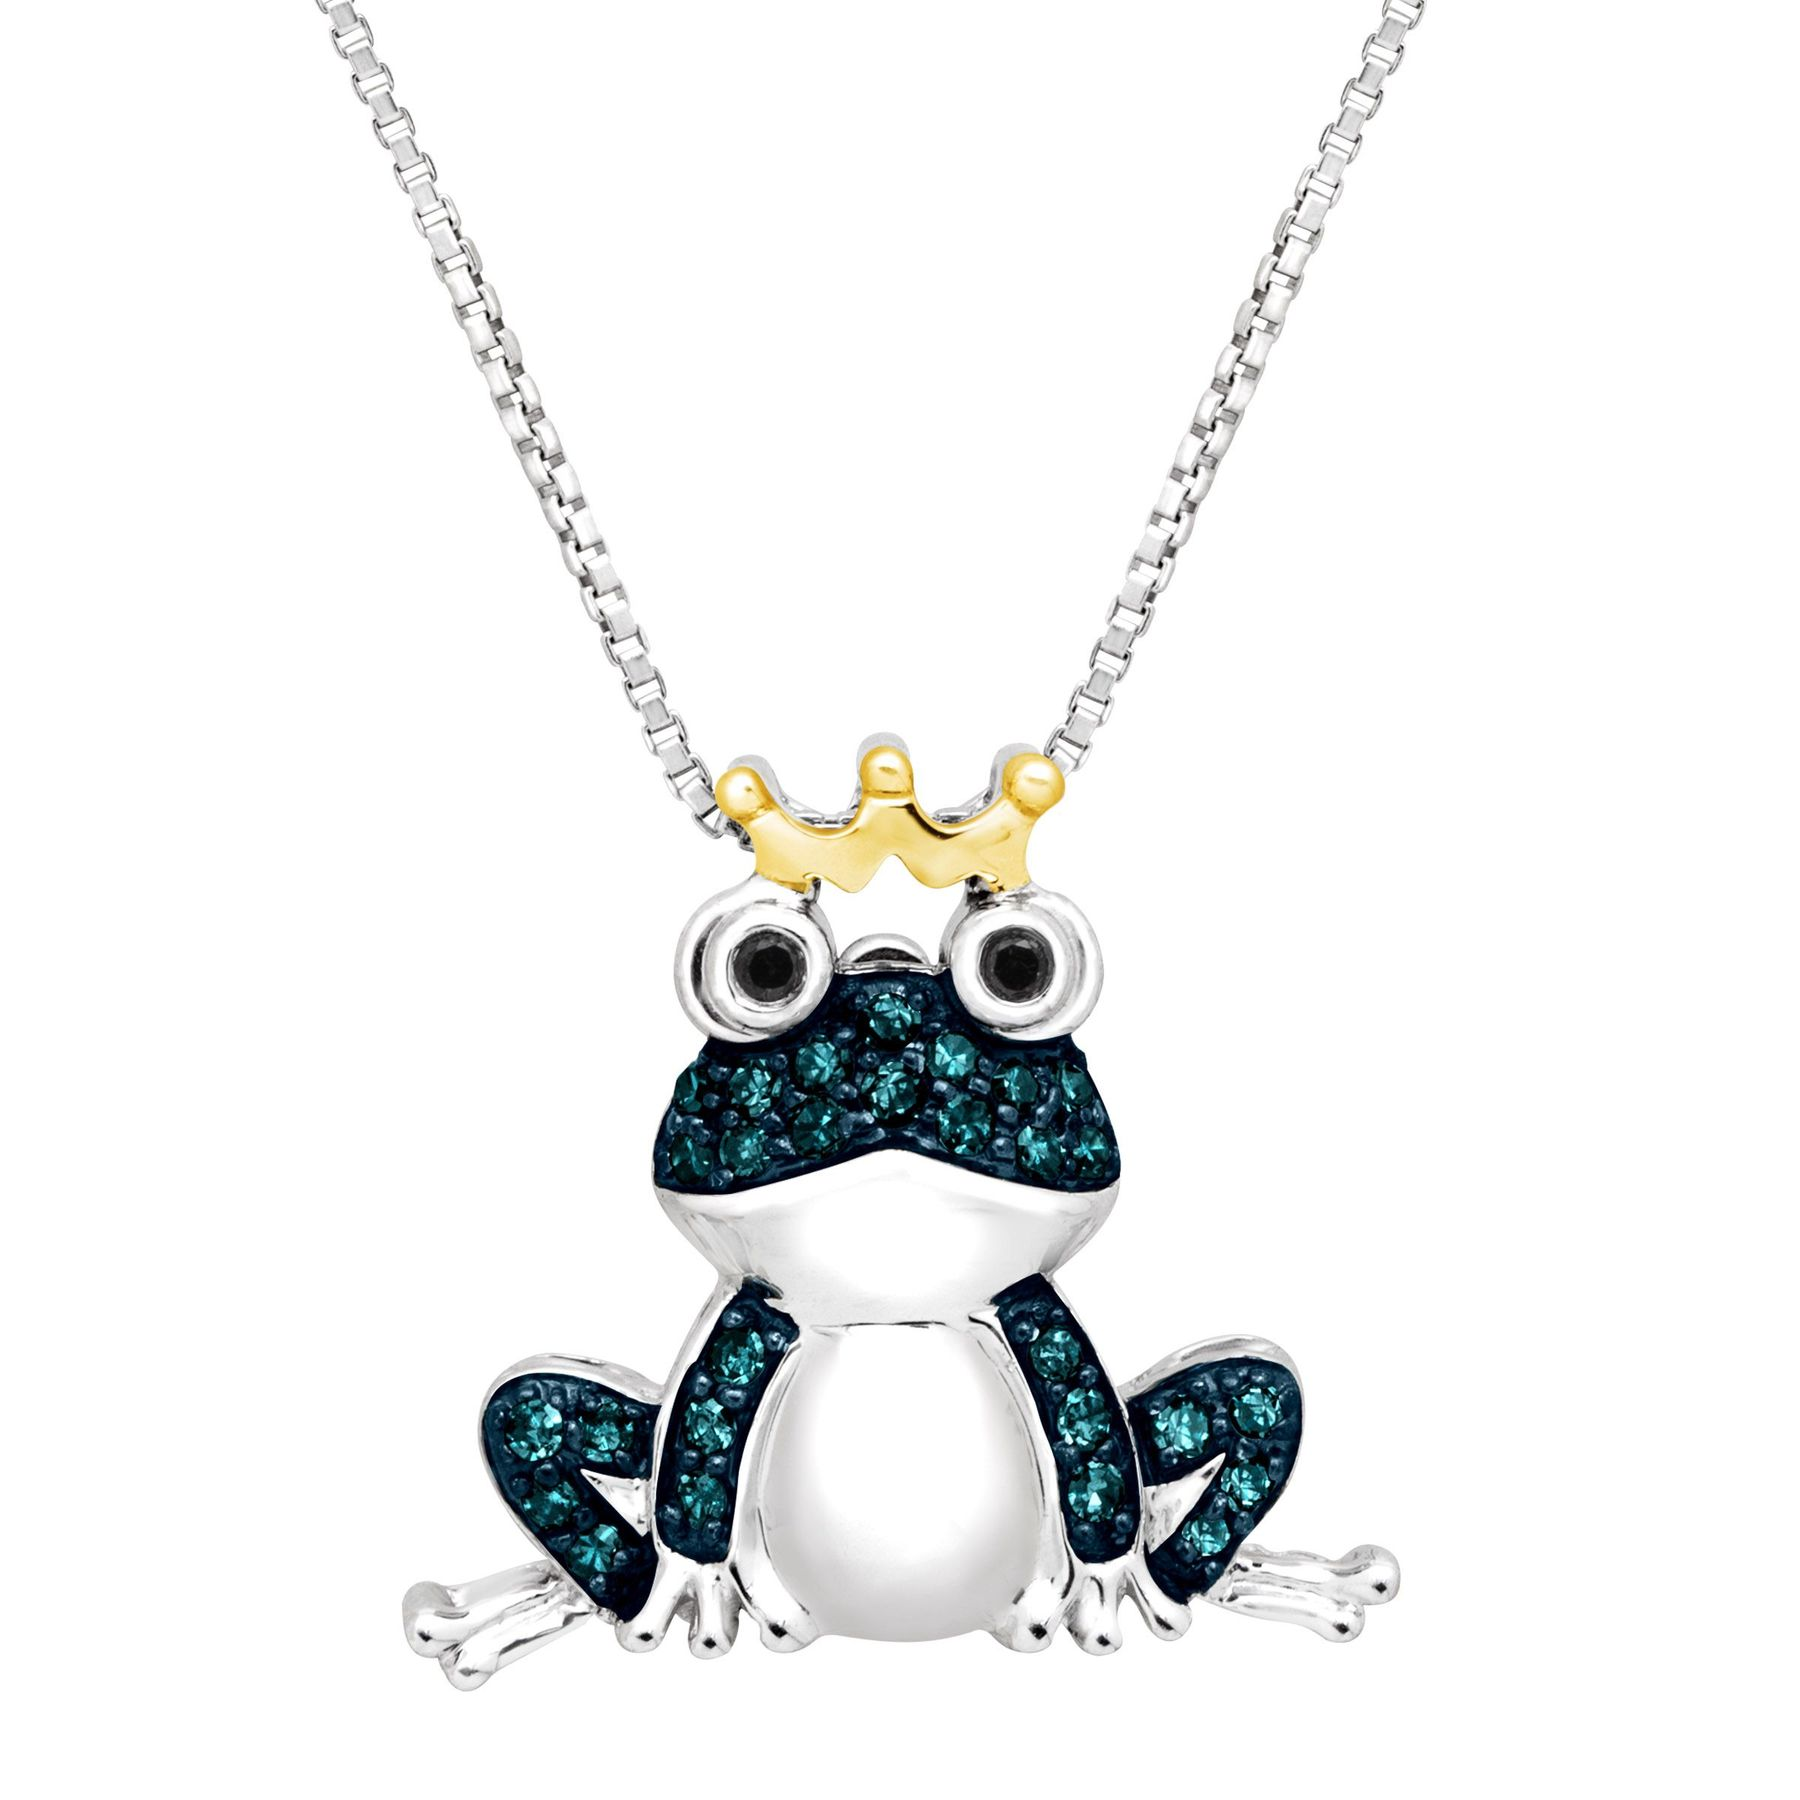 c jewelry k pendant gold com white amazon dp frog